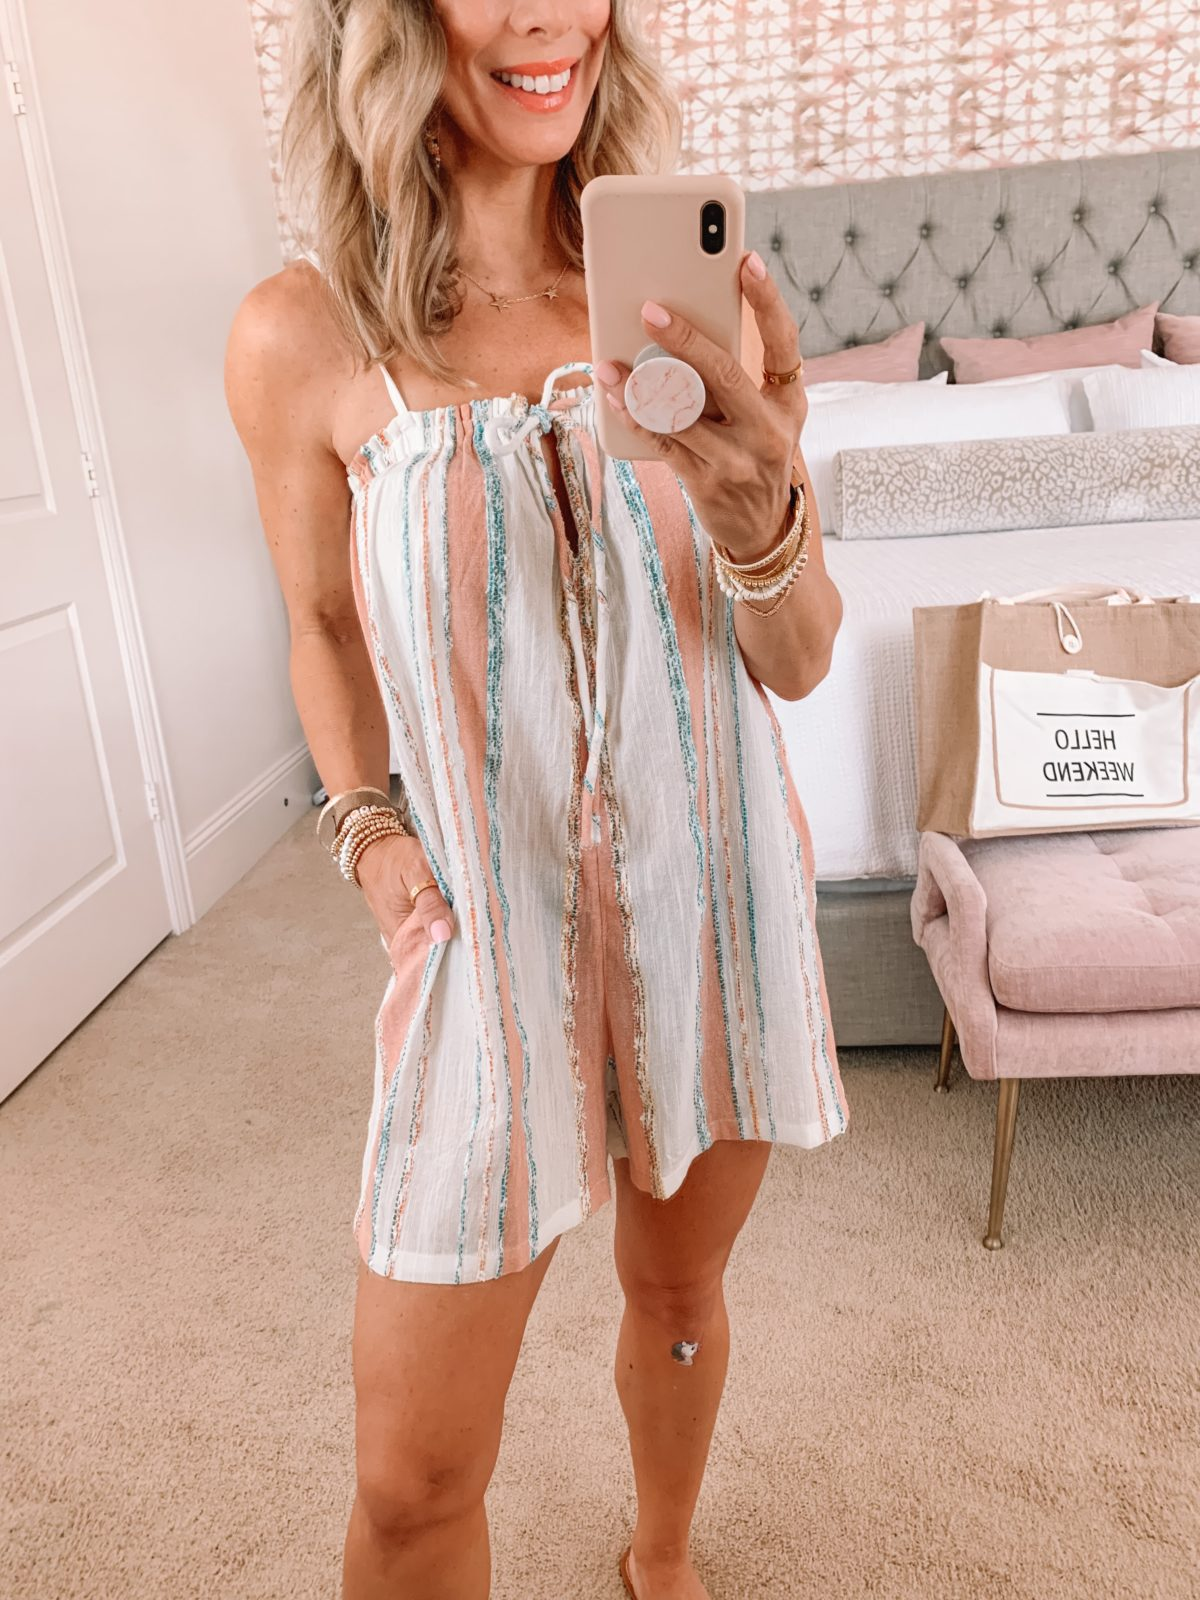 Dressing Room Finds, Striped CoverUP, Sandals, Weekend Tote